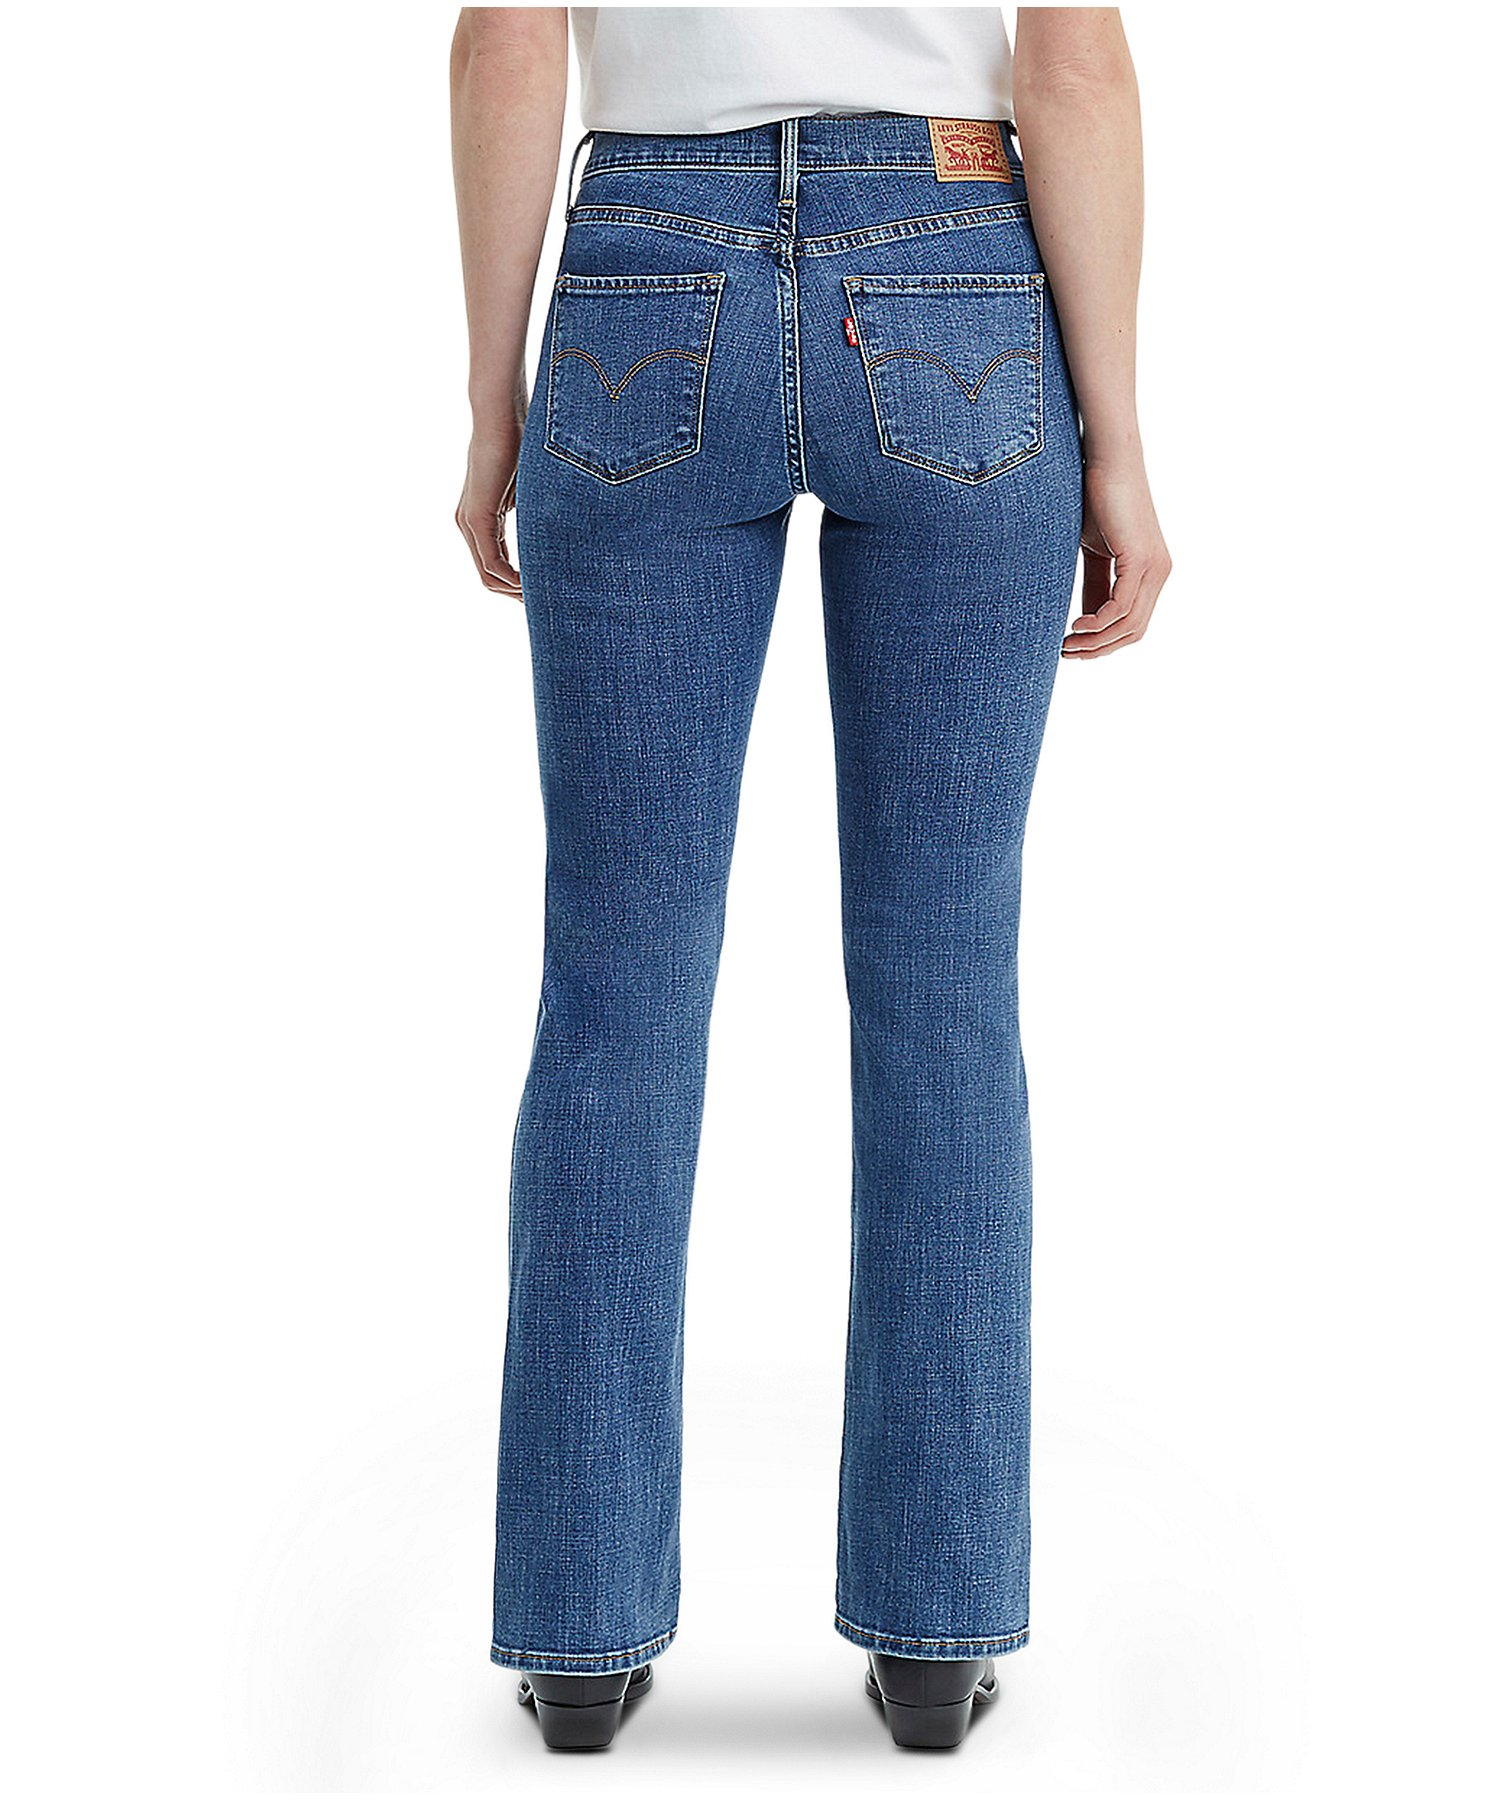 agreatvarietyofmodels reputable site kid Women's 315 Shaping Bootcut Jeans